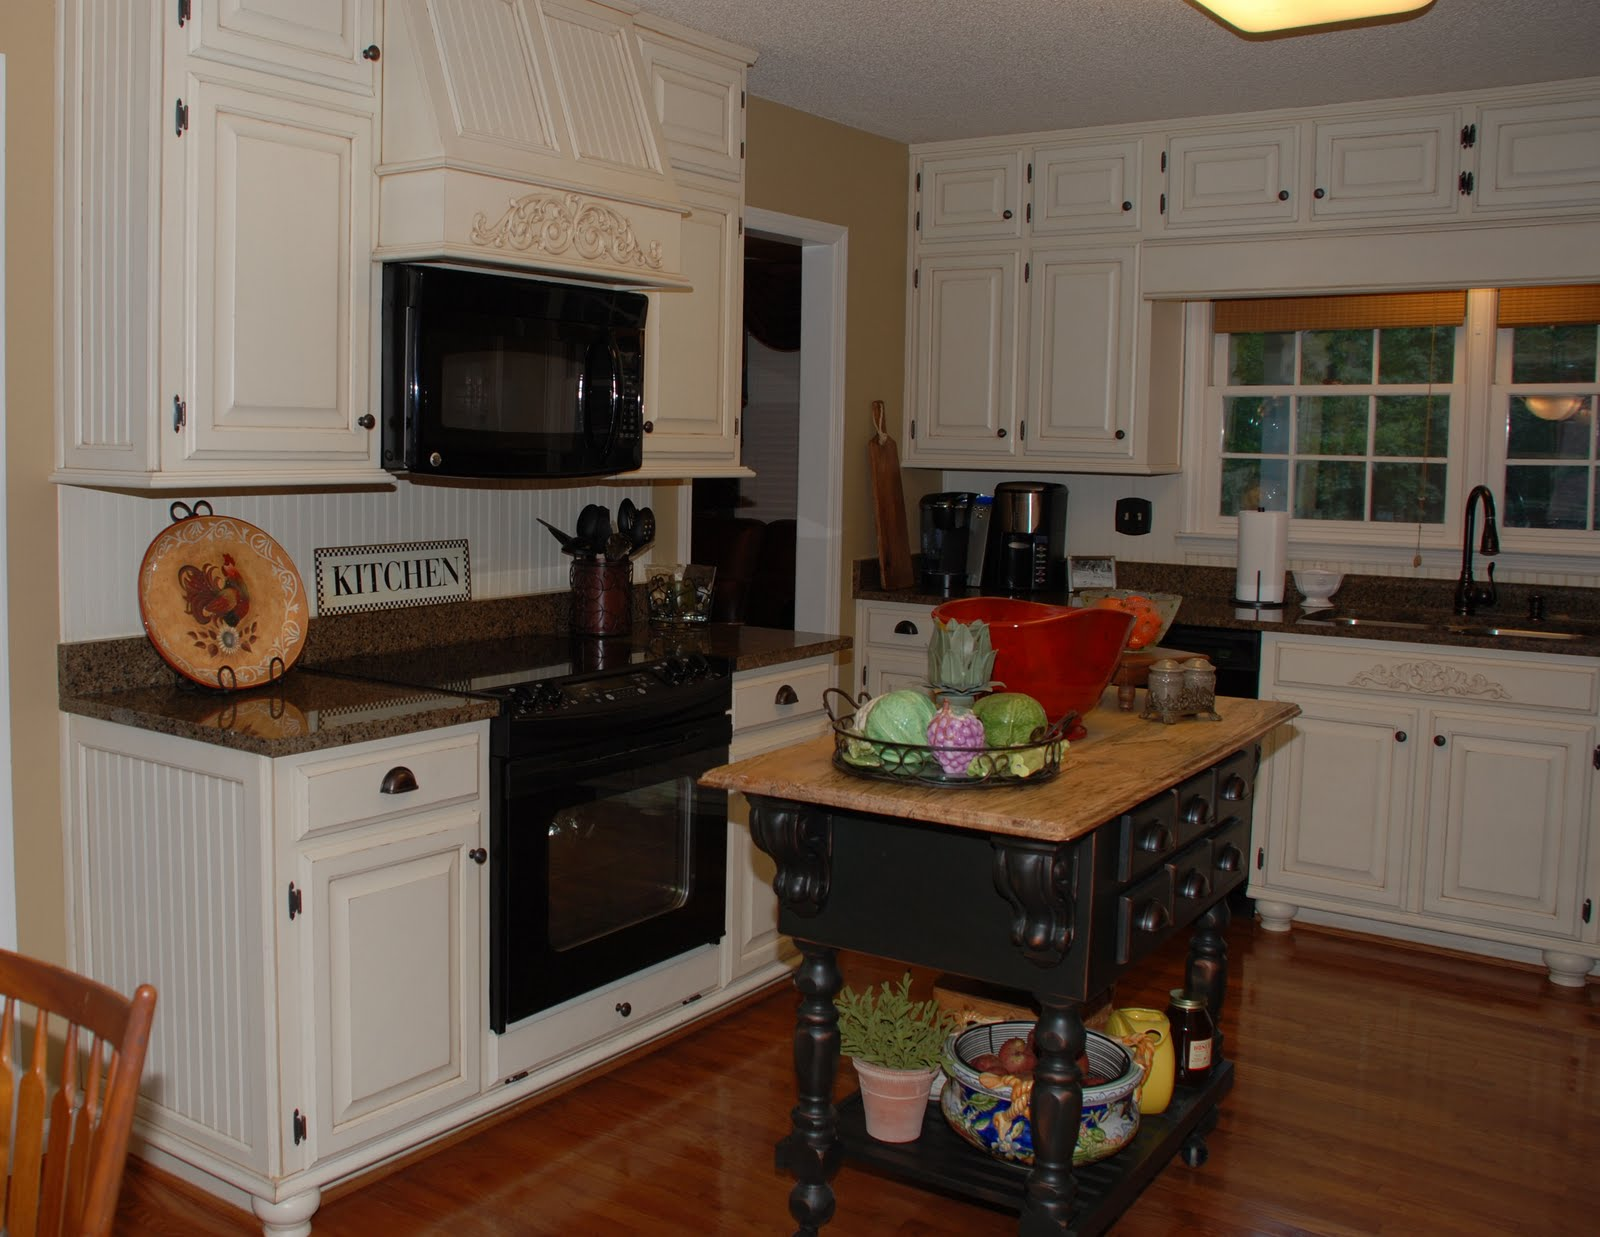 Painted Oak Kitchen Cabinets Remodelaholic From Oak Kitchen Cabinets To Painted White